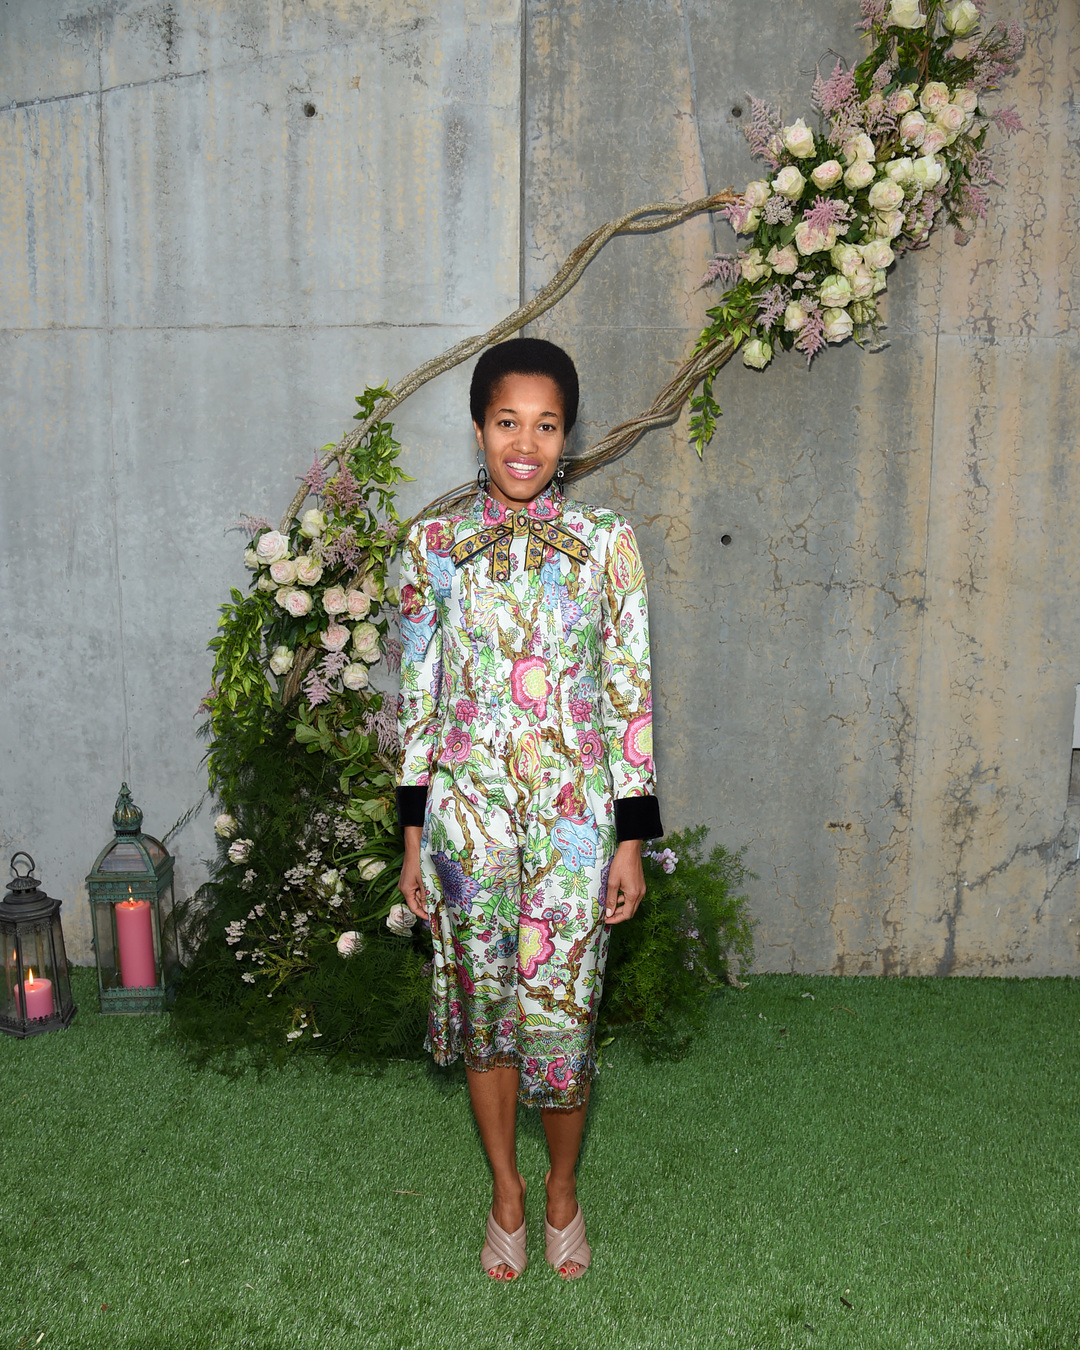 NEW YORK, NY - MAY 02: Tamu McPherson attends the Gucci Bloom Fragrance Launch at MoMA PS.1 on May 2, 2017 in New York City. (Photo by Jamie McCarthy/Getty Images for Gucci)